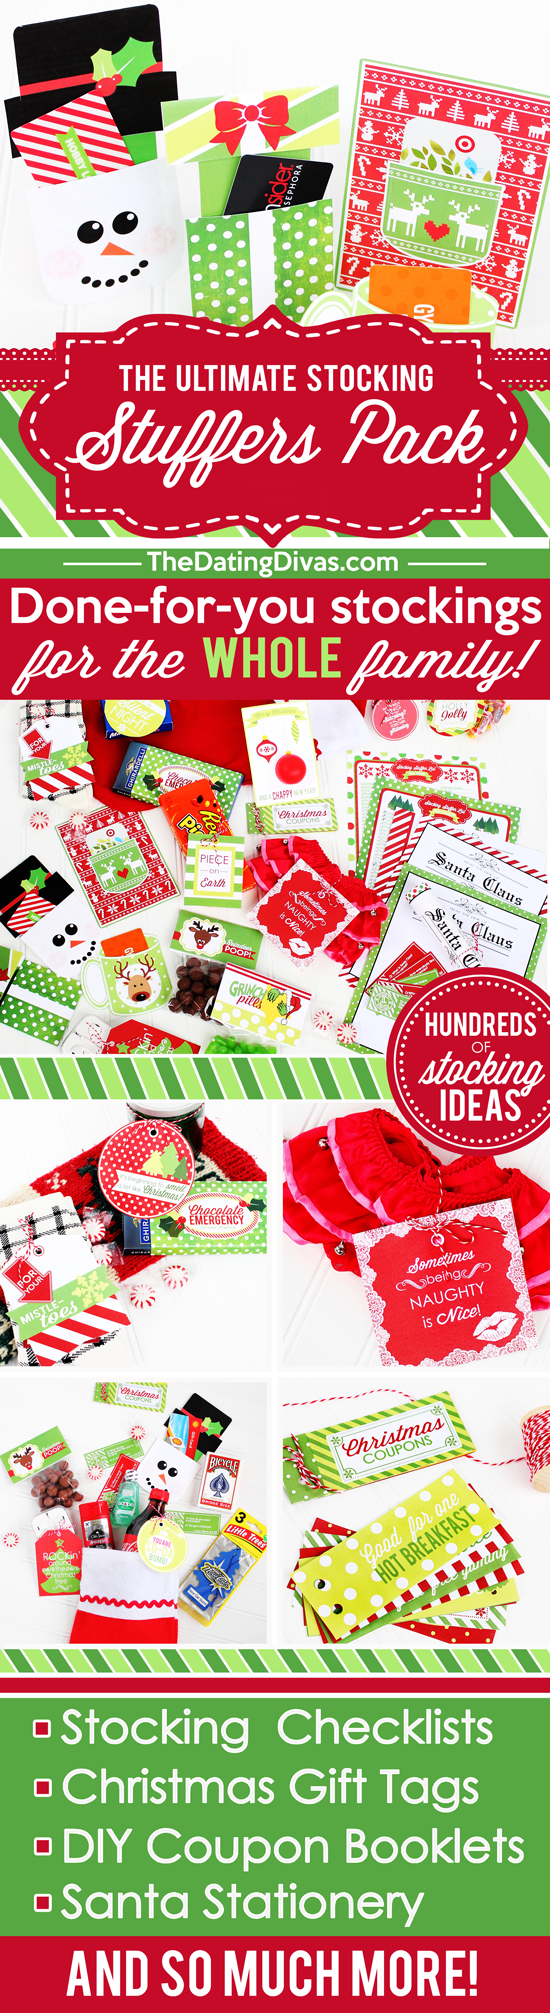 unique and creative stocking stuffer ideas - Stocking Stuffer Idea